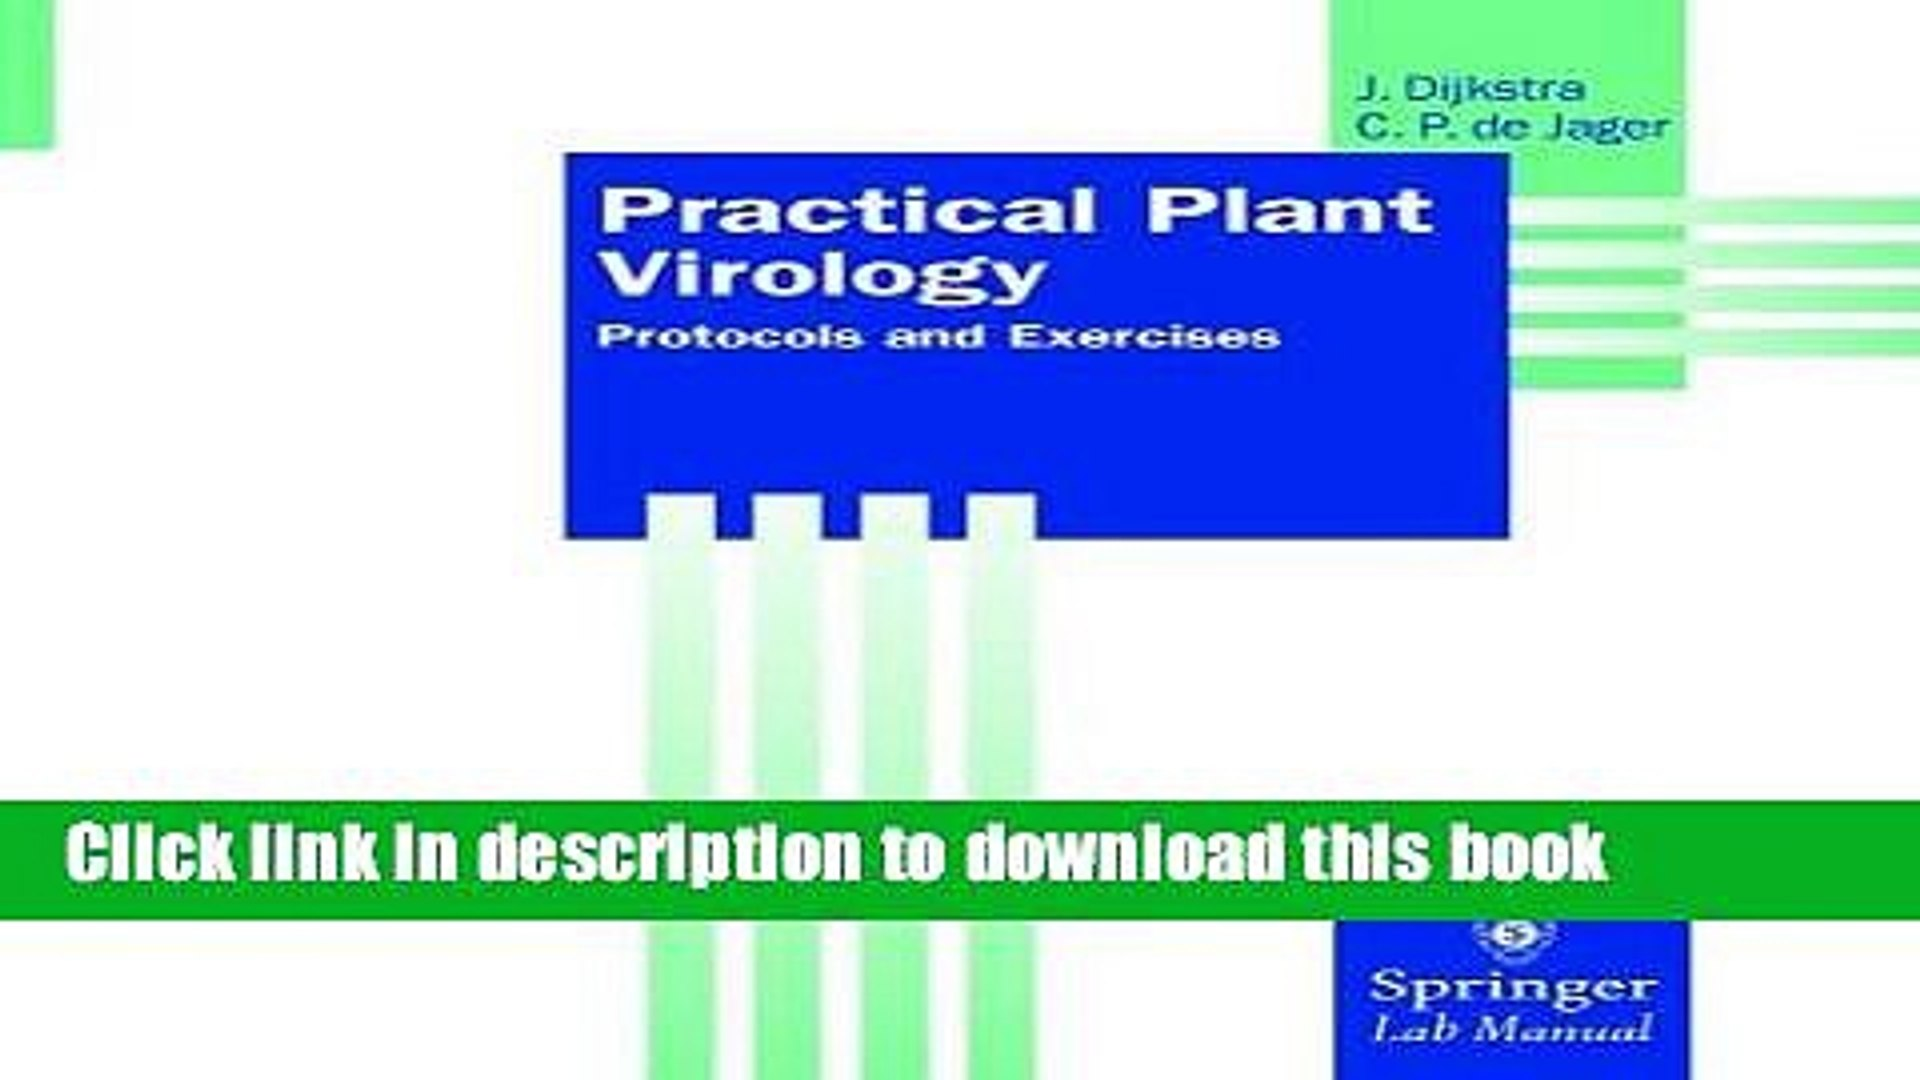 Practical Plant Virology: Protocols and Exercises